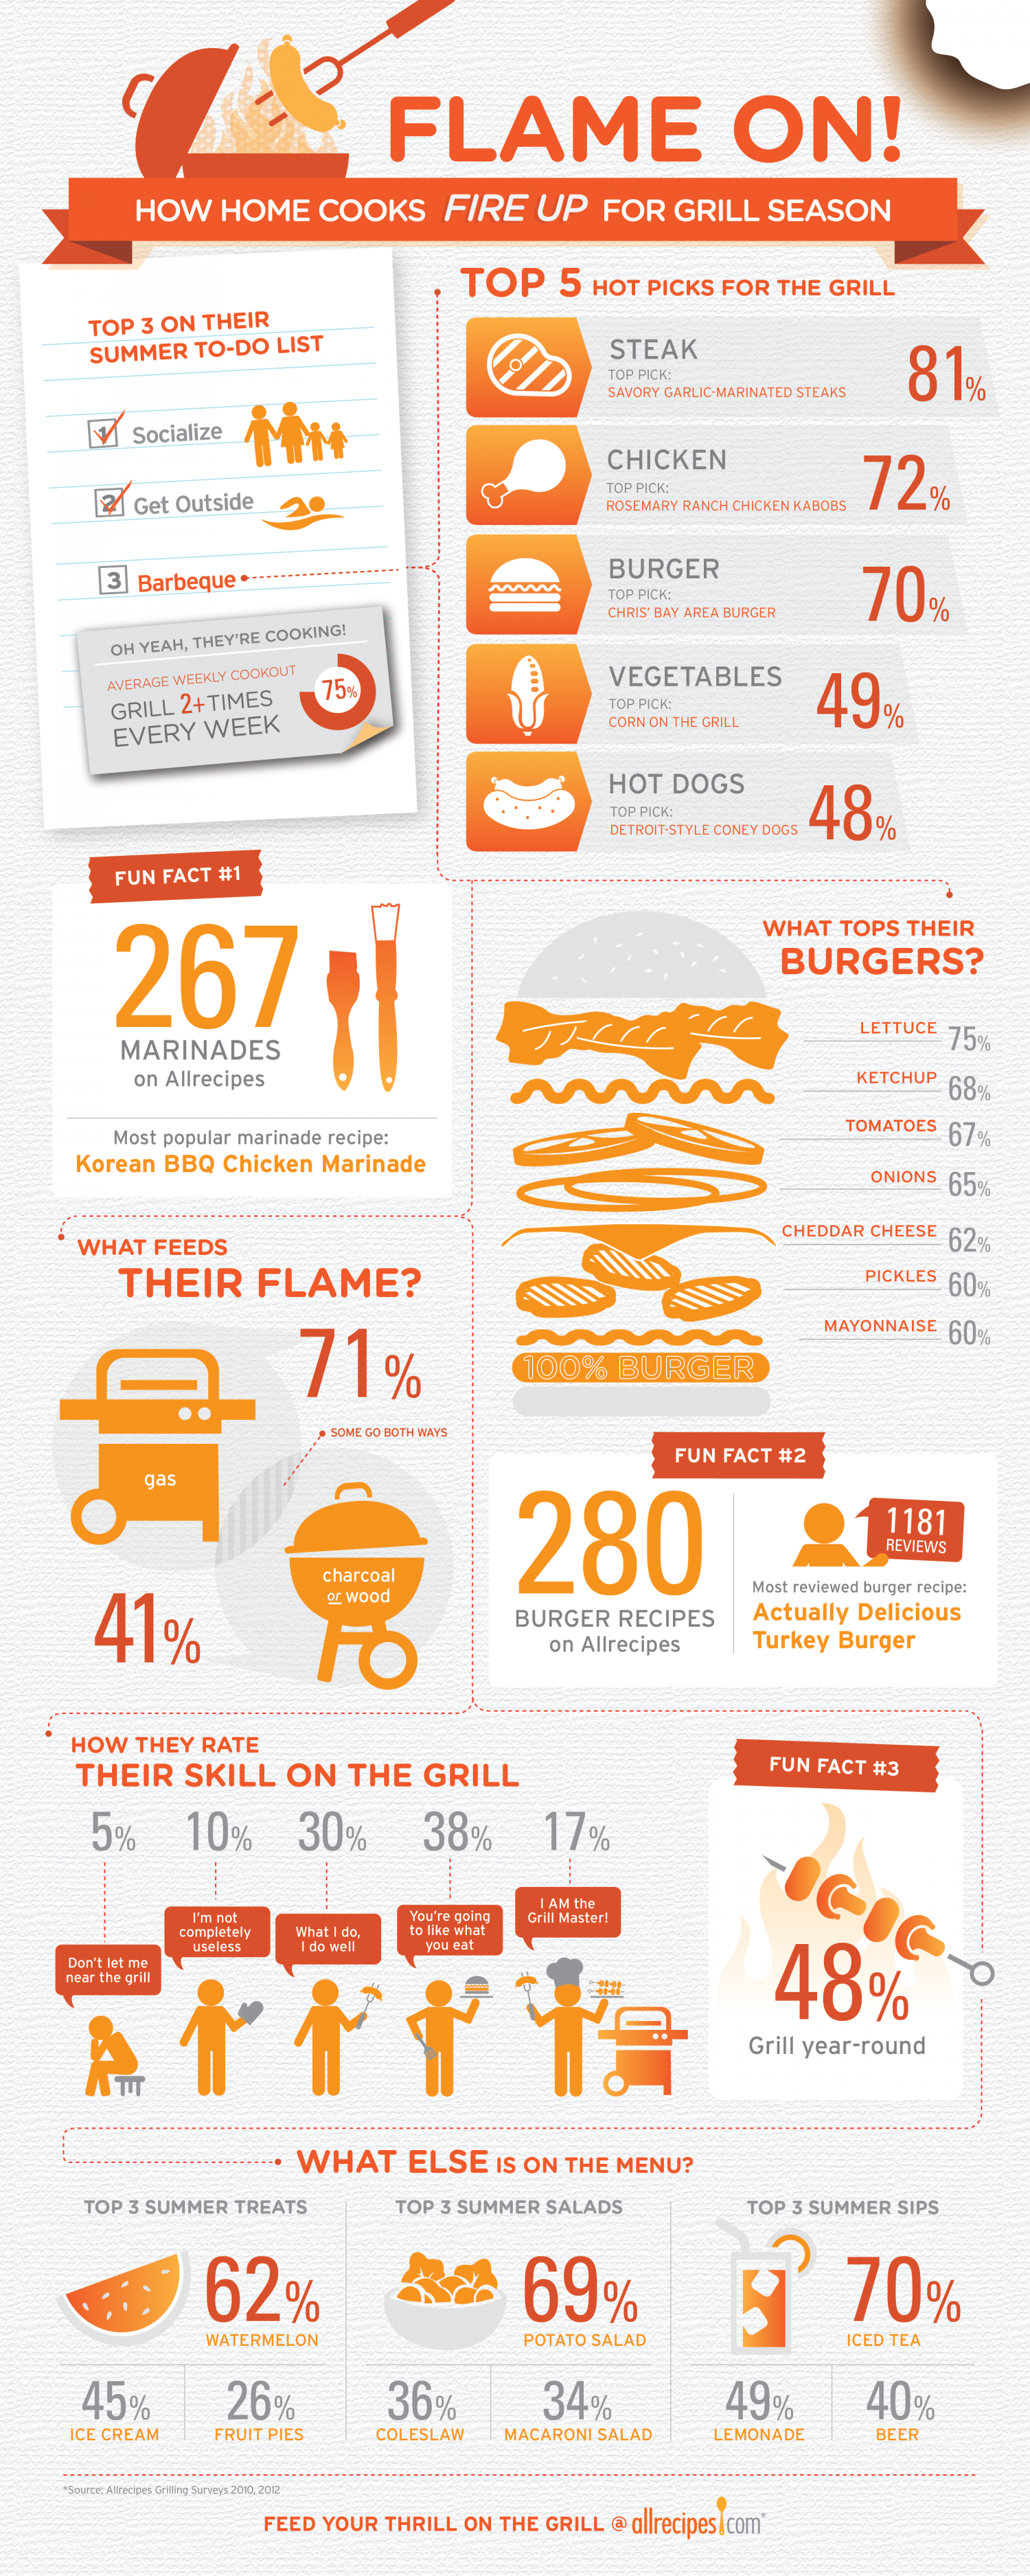 How home cooks FIRE UP for grill season Infographic